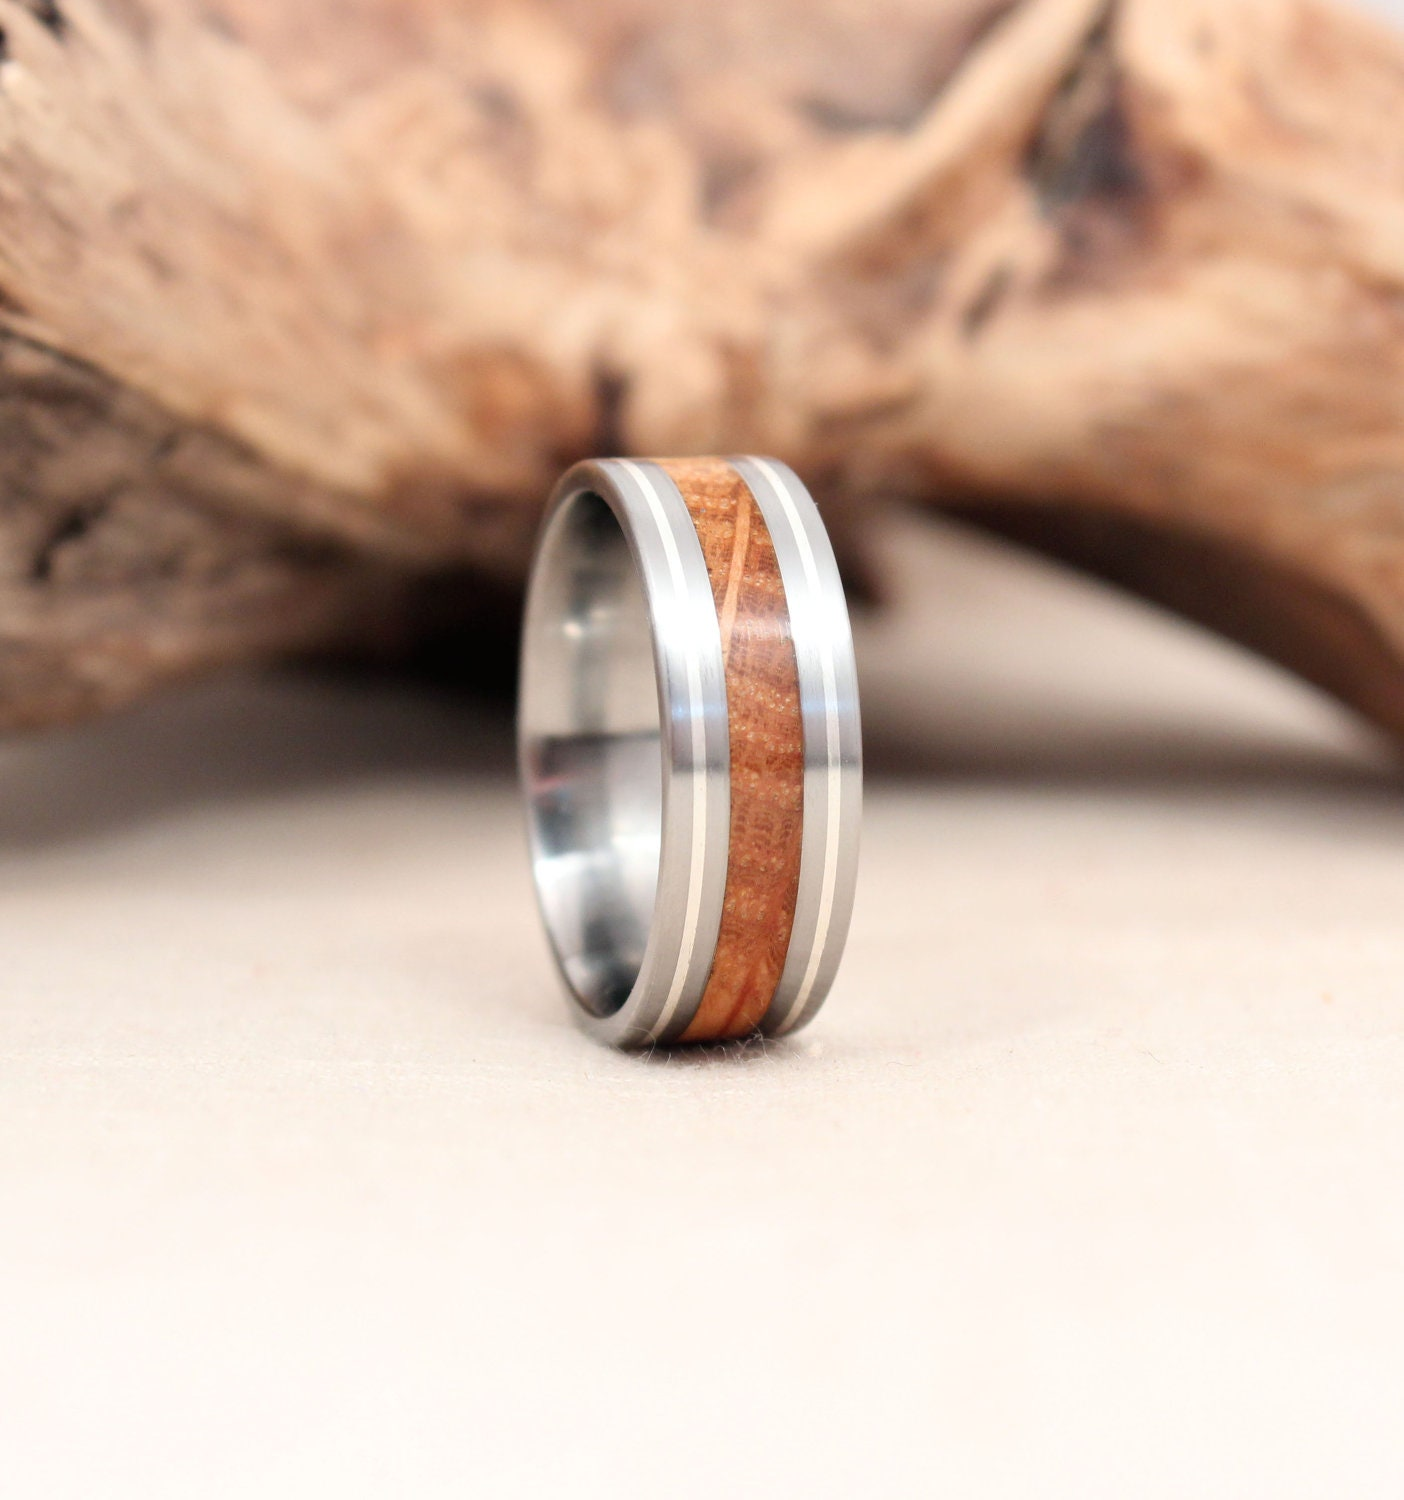 oak ss rings titanium ancient live products ring inlay bog fit wood steel stainless smoked core olivewood smokey comfort bentwood on with shavings